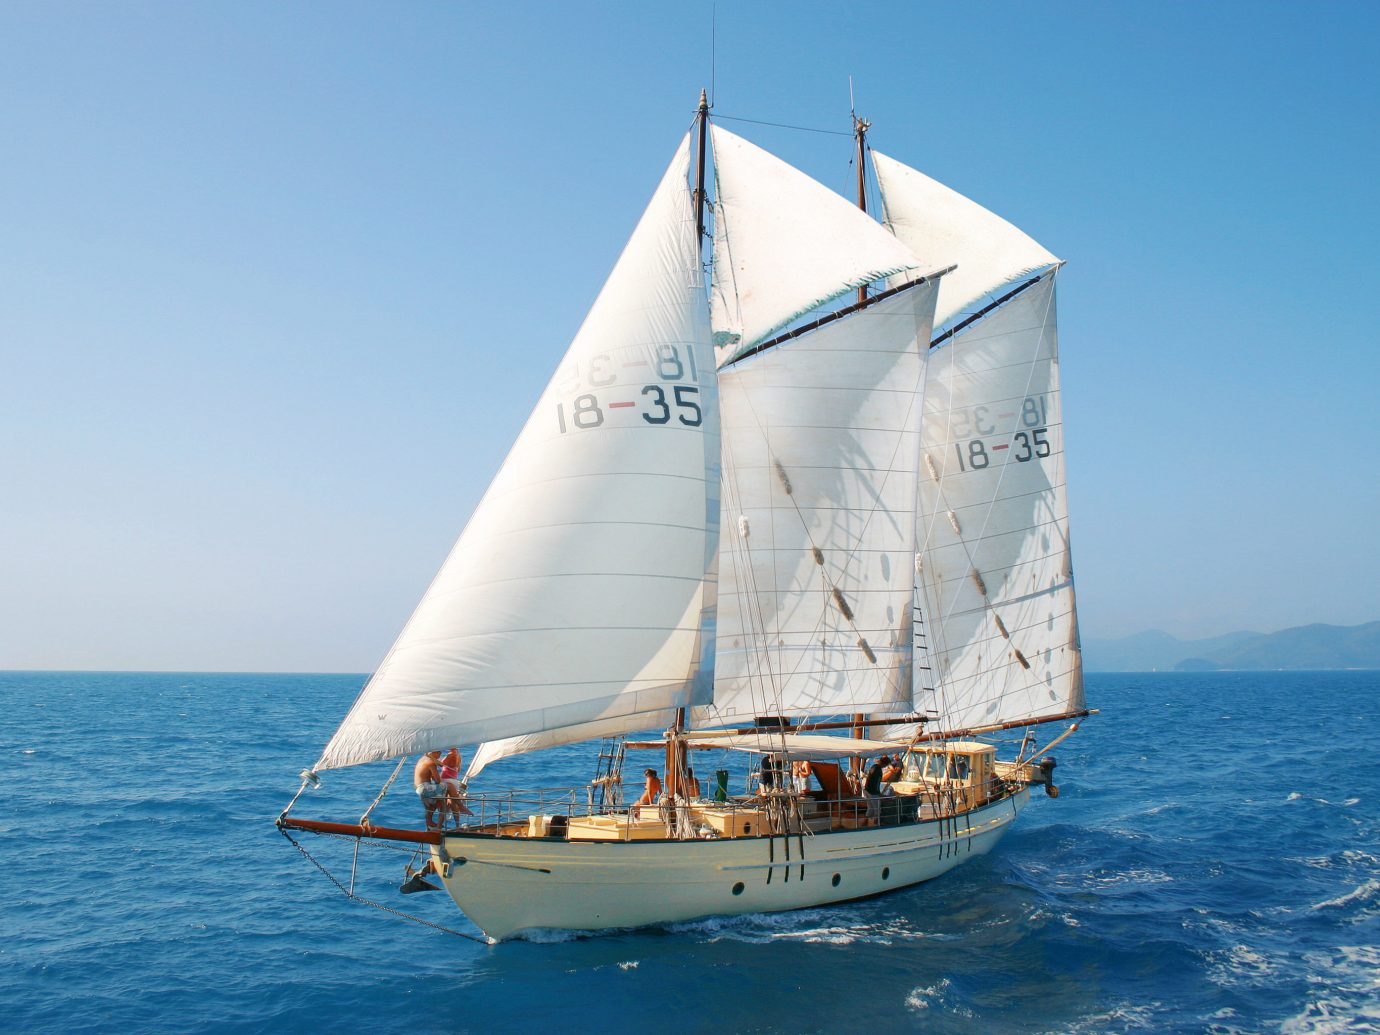 Offbeat sky water watercraft transport outdoor Boat sailing vessel sailing ship vehicle sail sailboat ship sailing barquentine tall ship dinghy sailing schooner blue brigantine yacht Sea sailboat racing galway hooker keelboat windjammer brig yacht racing lugger mast